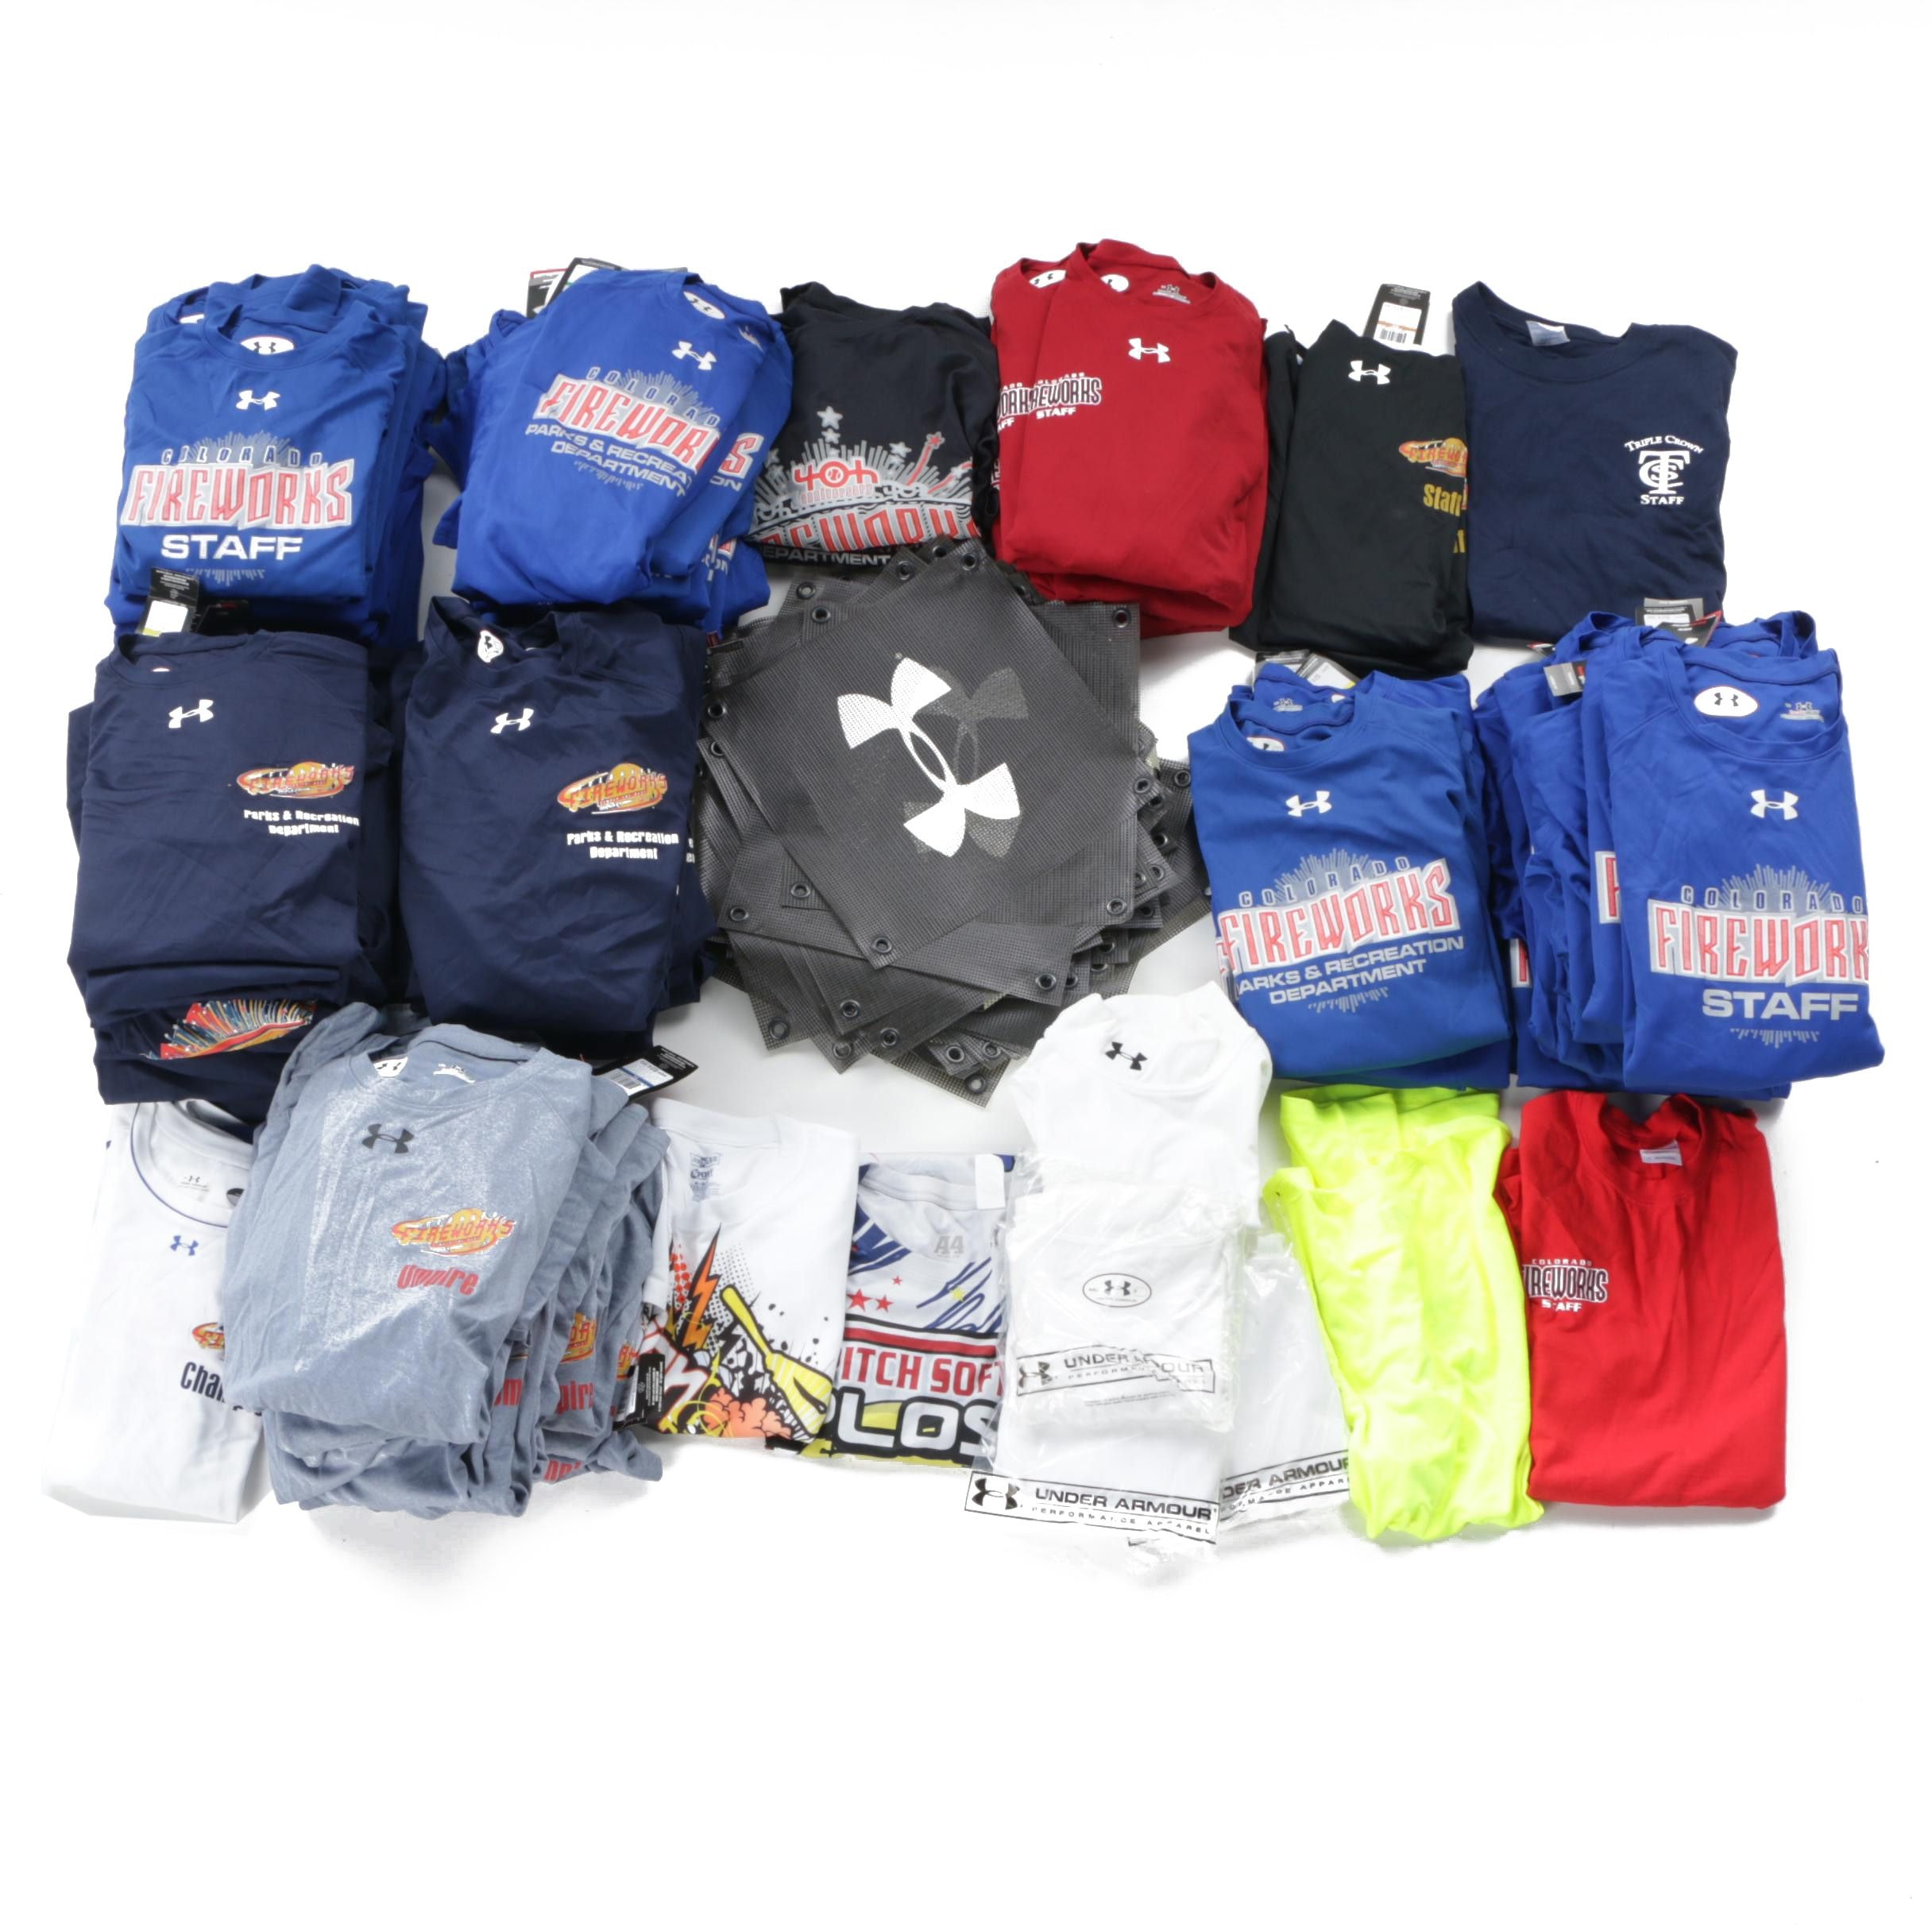 Under Armour Athletic shirts and T-Shirts